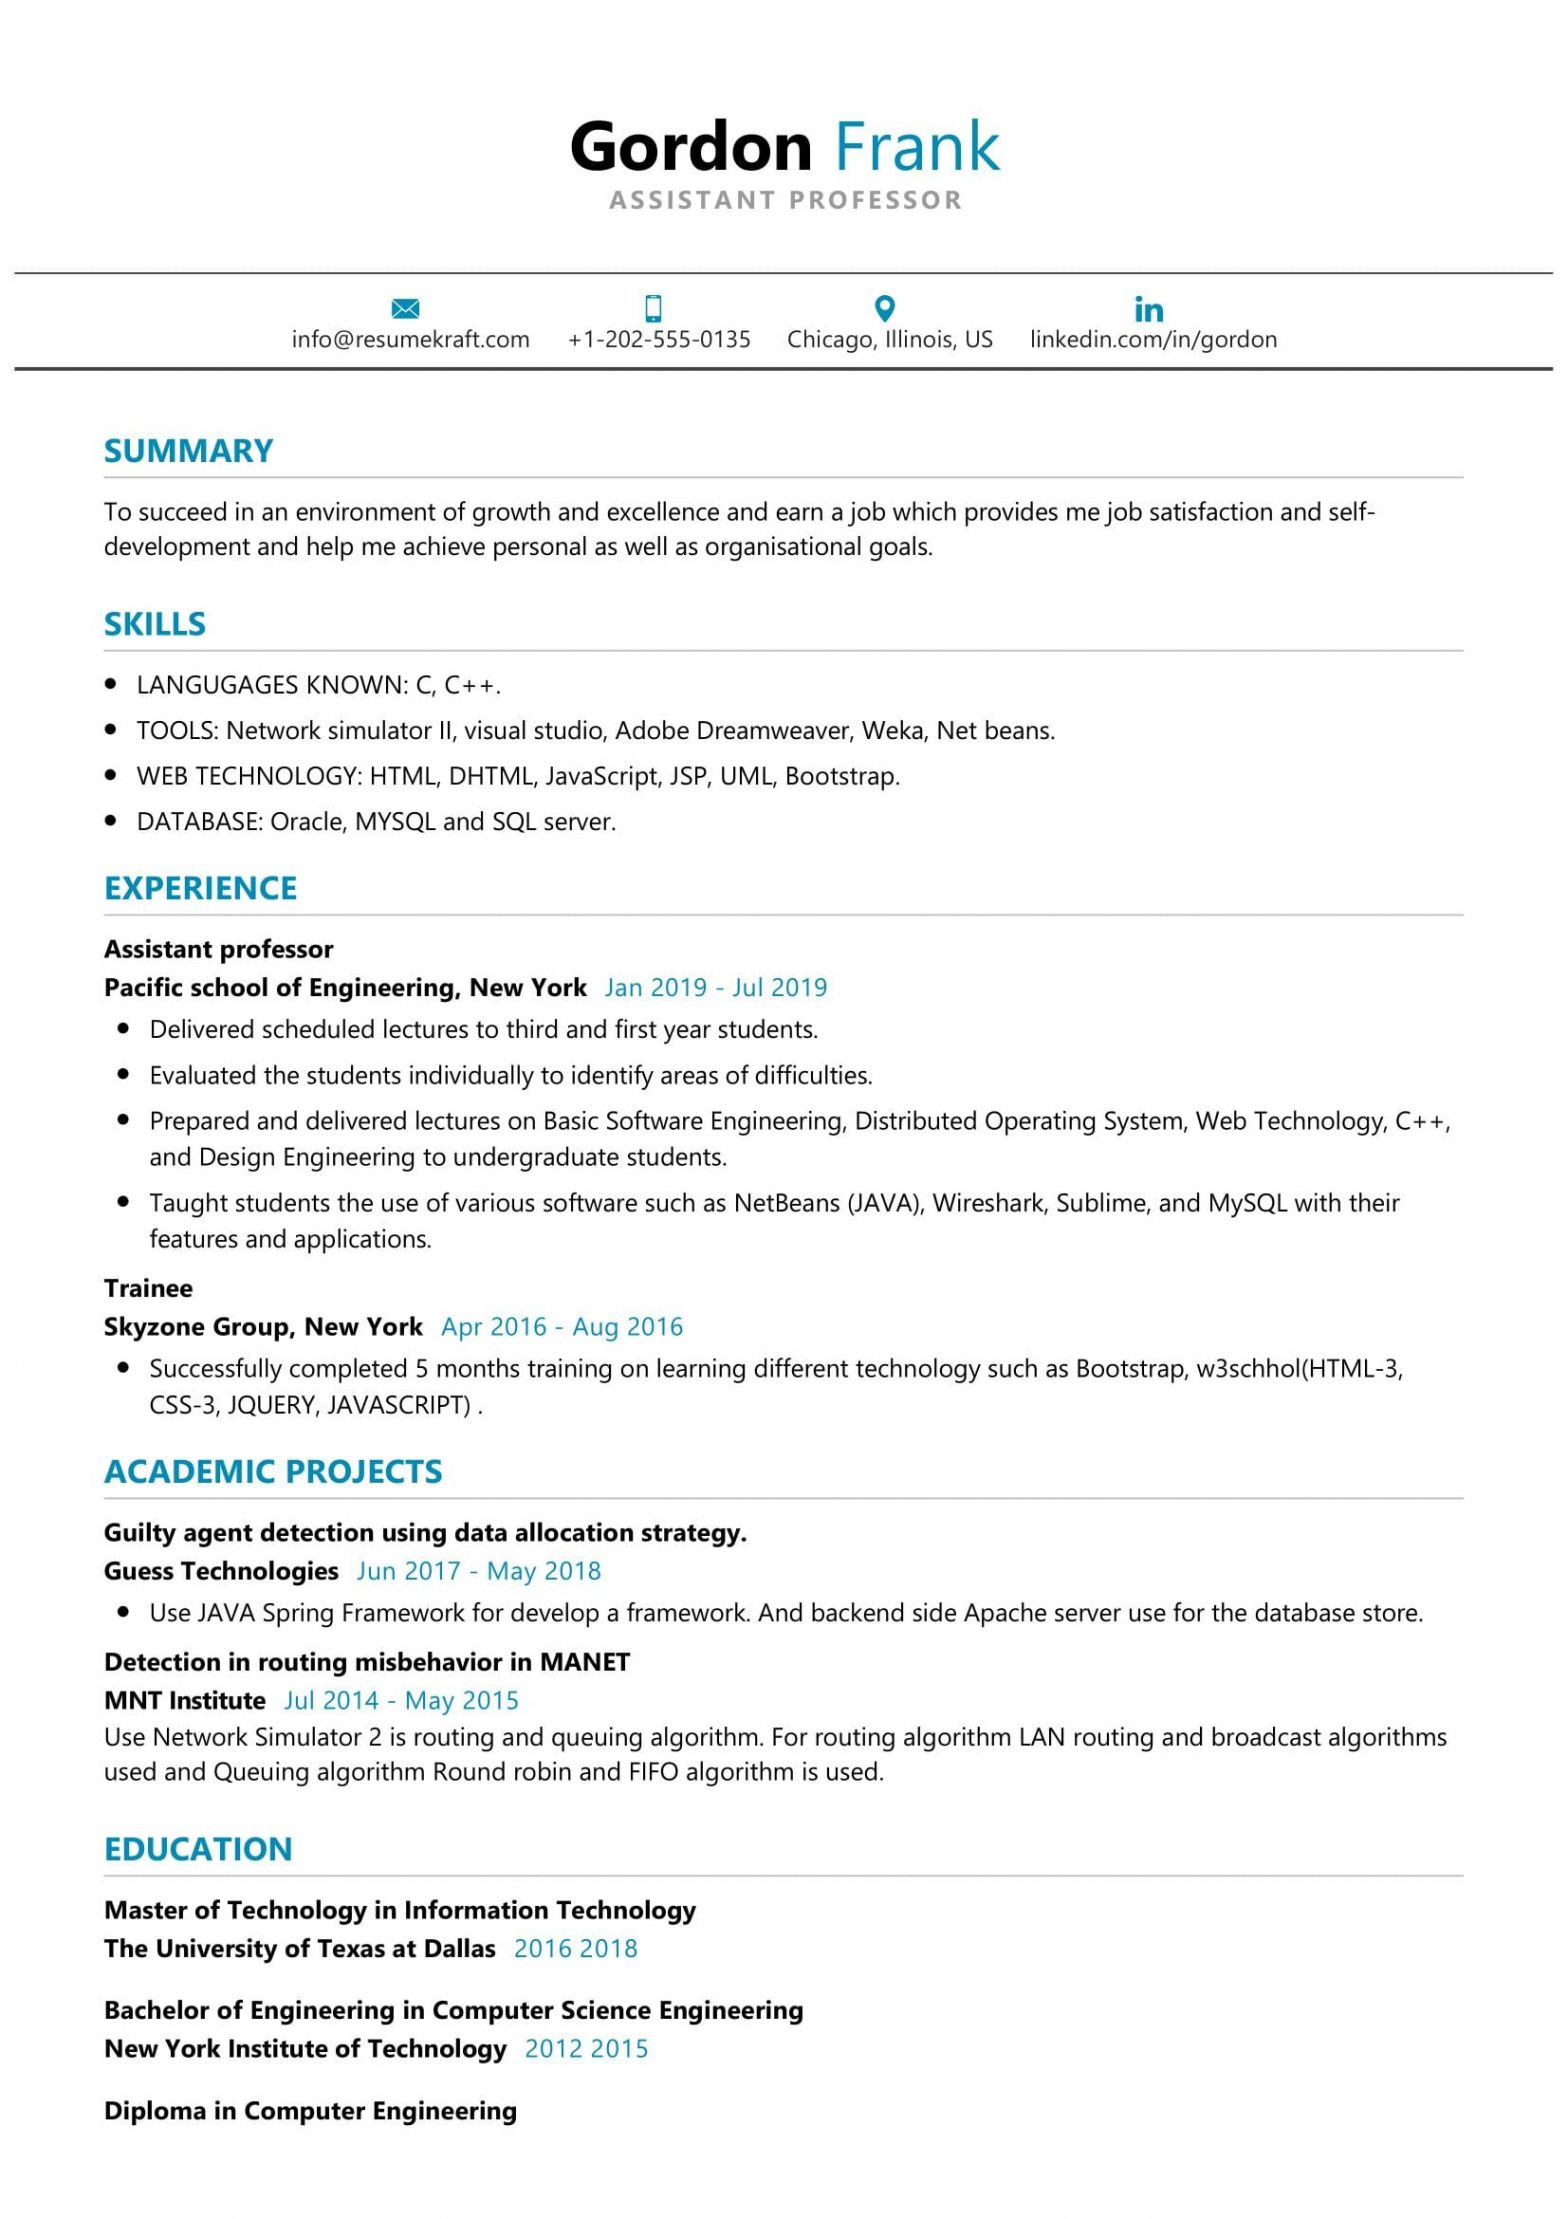 Sample Career Objective for assistant Professor Resume assistant Professor Resume Sample Resumekraft